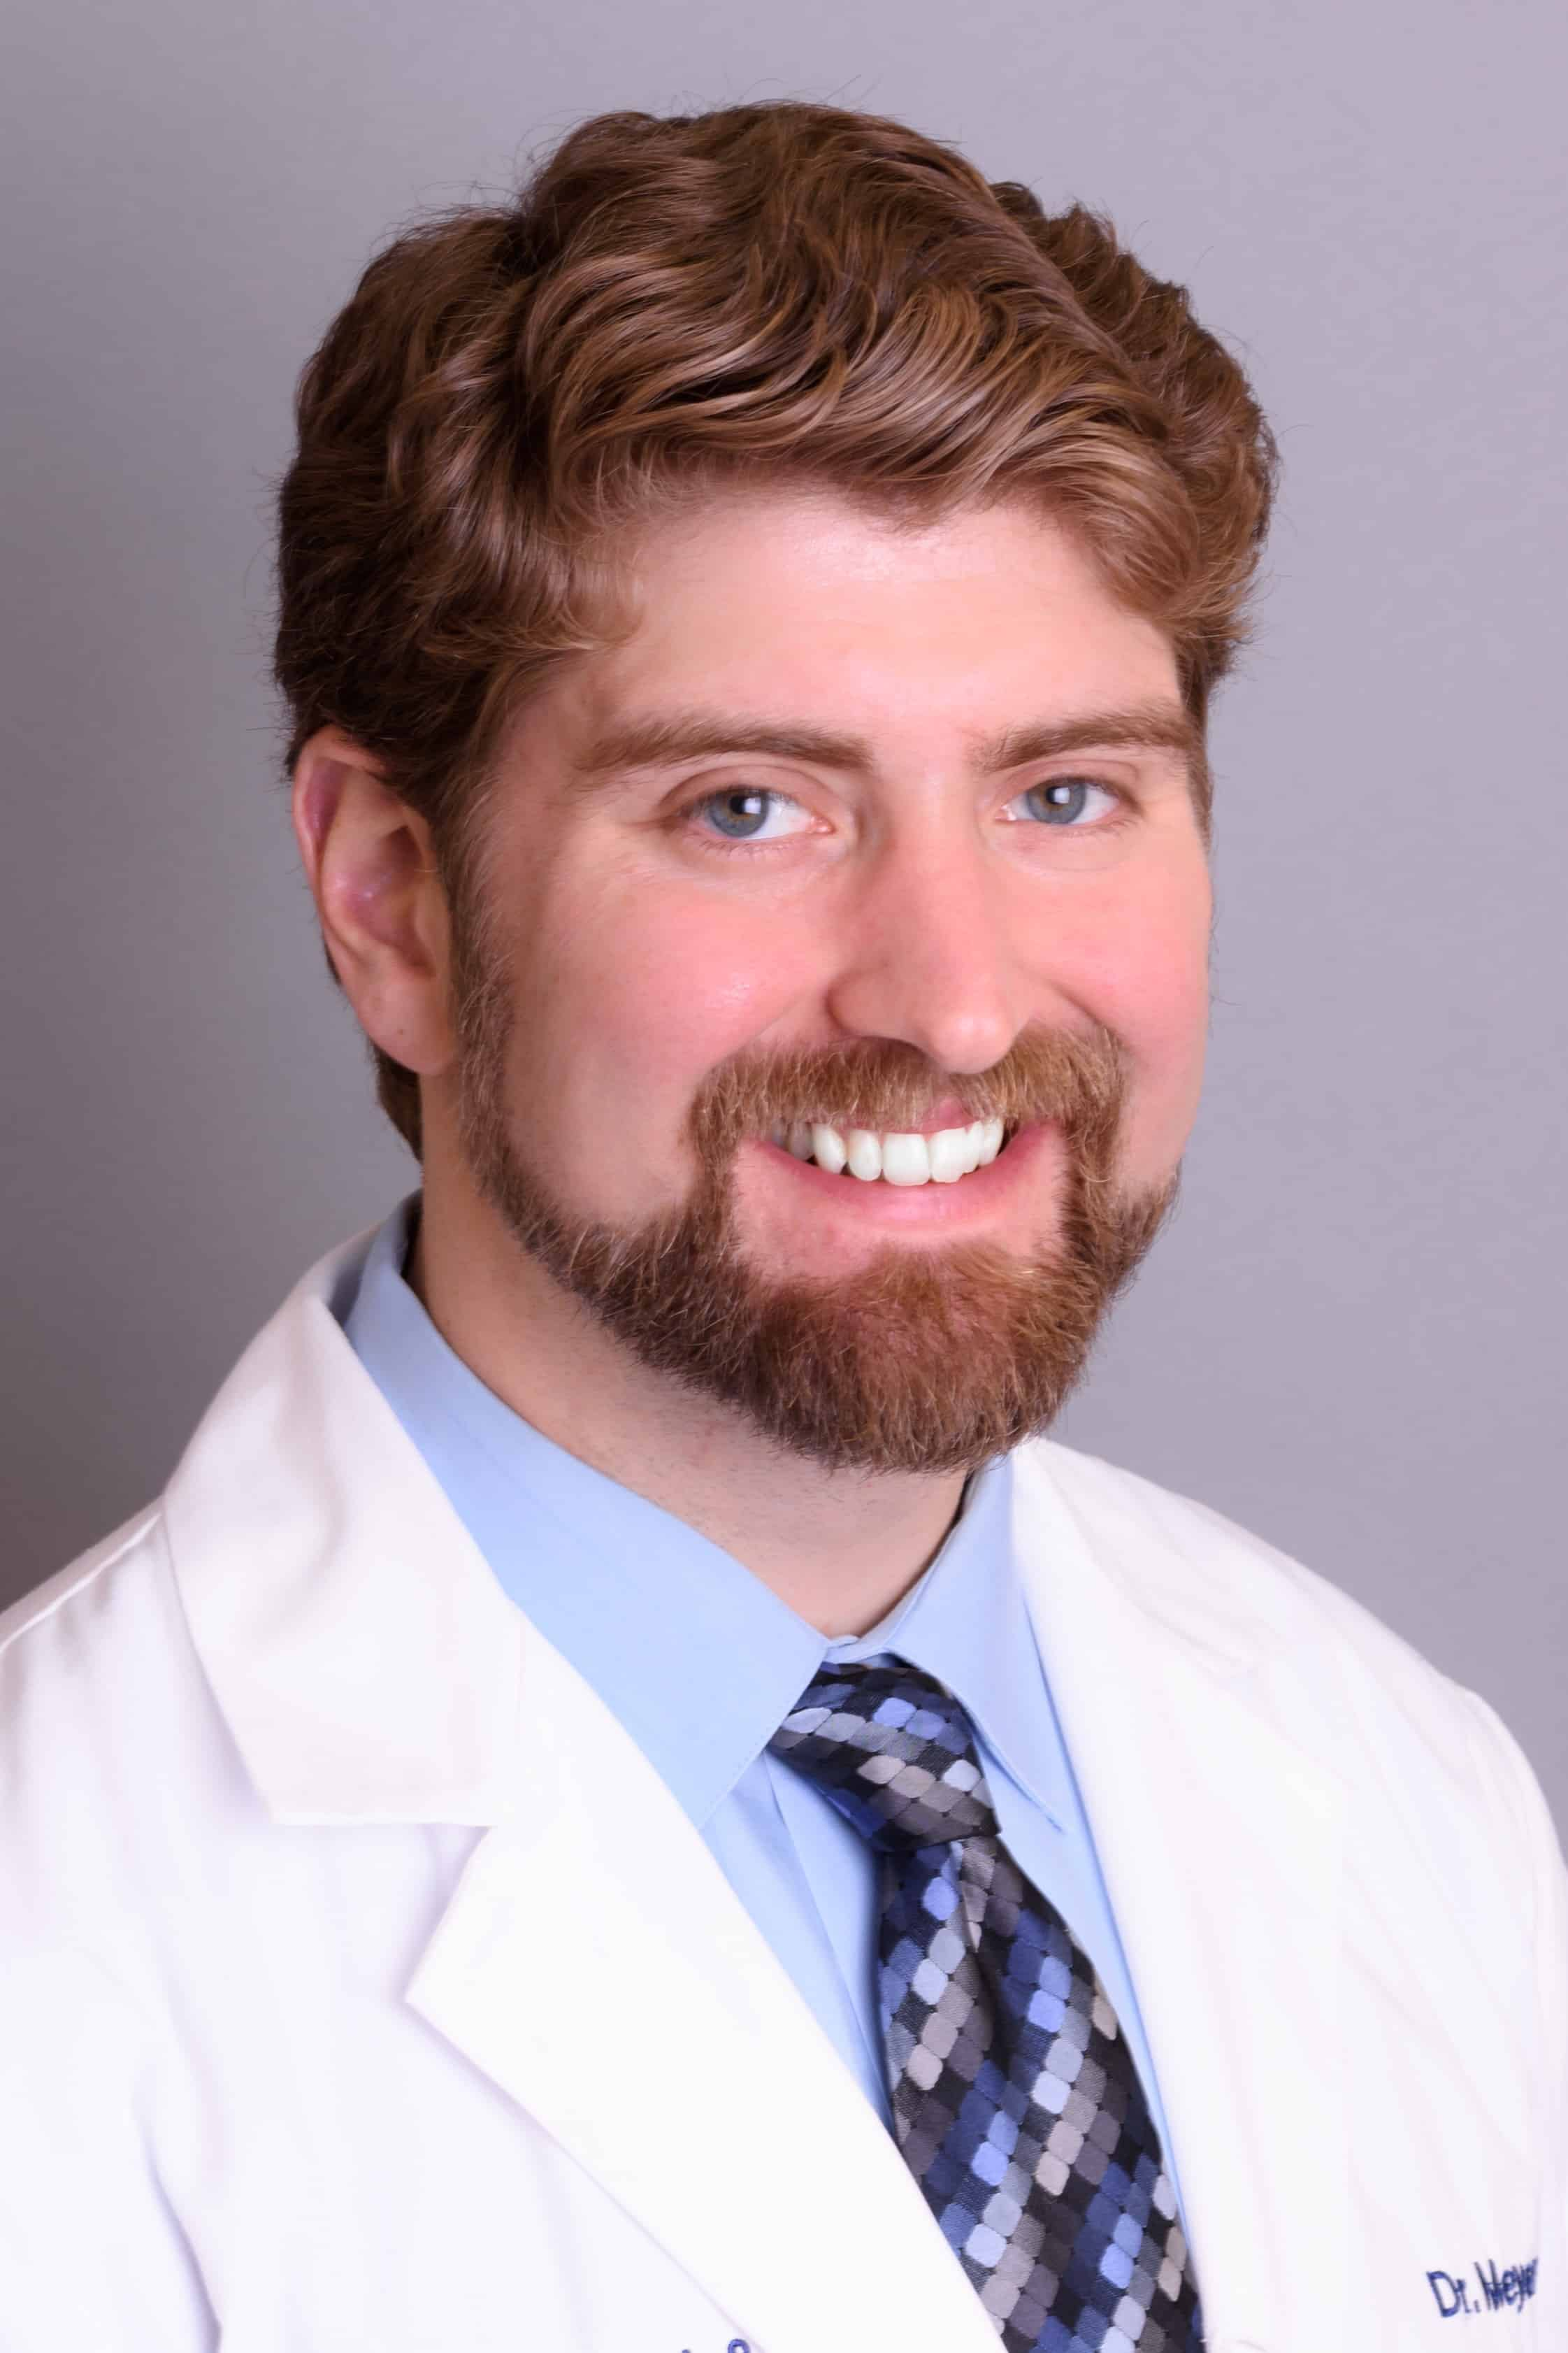 Foot and Ankle Surgeon Dr. Jordan Meyers